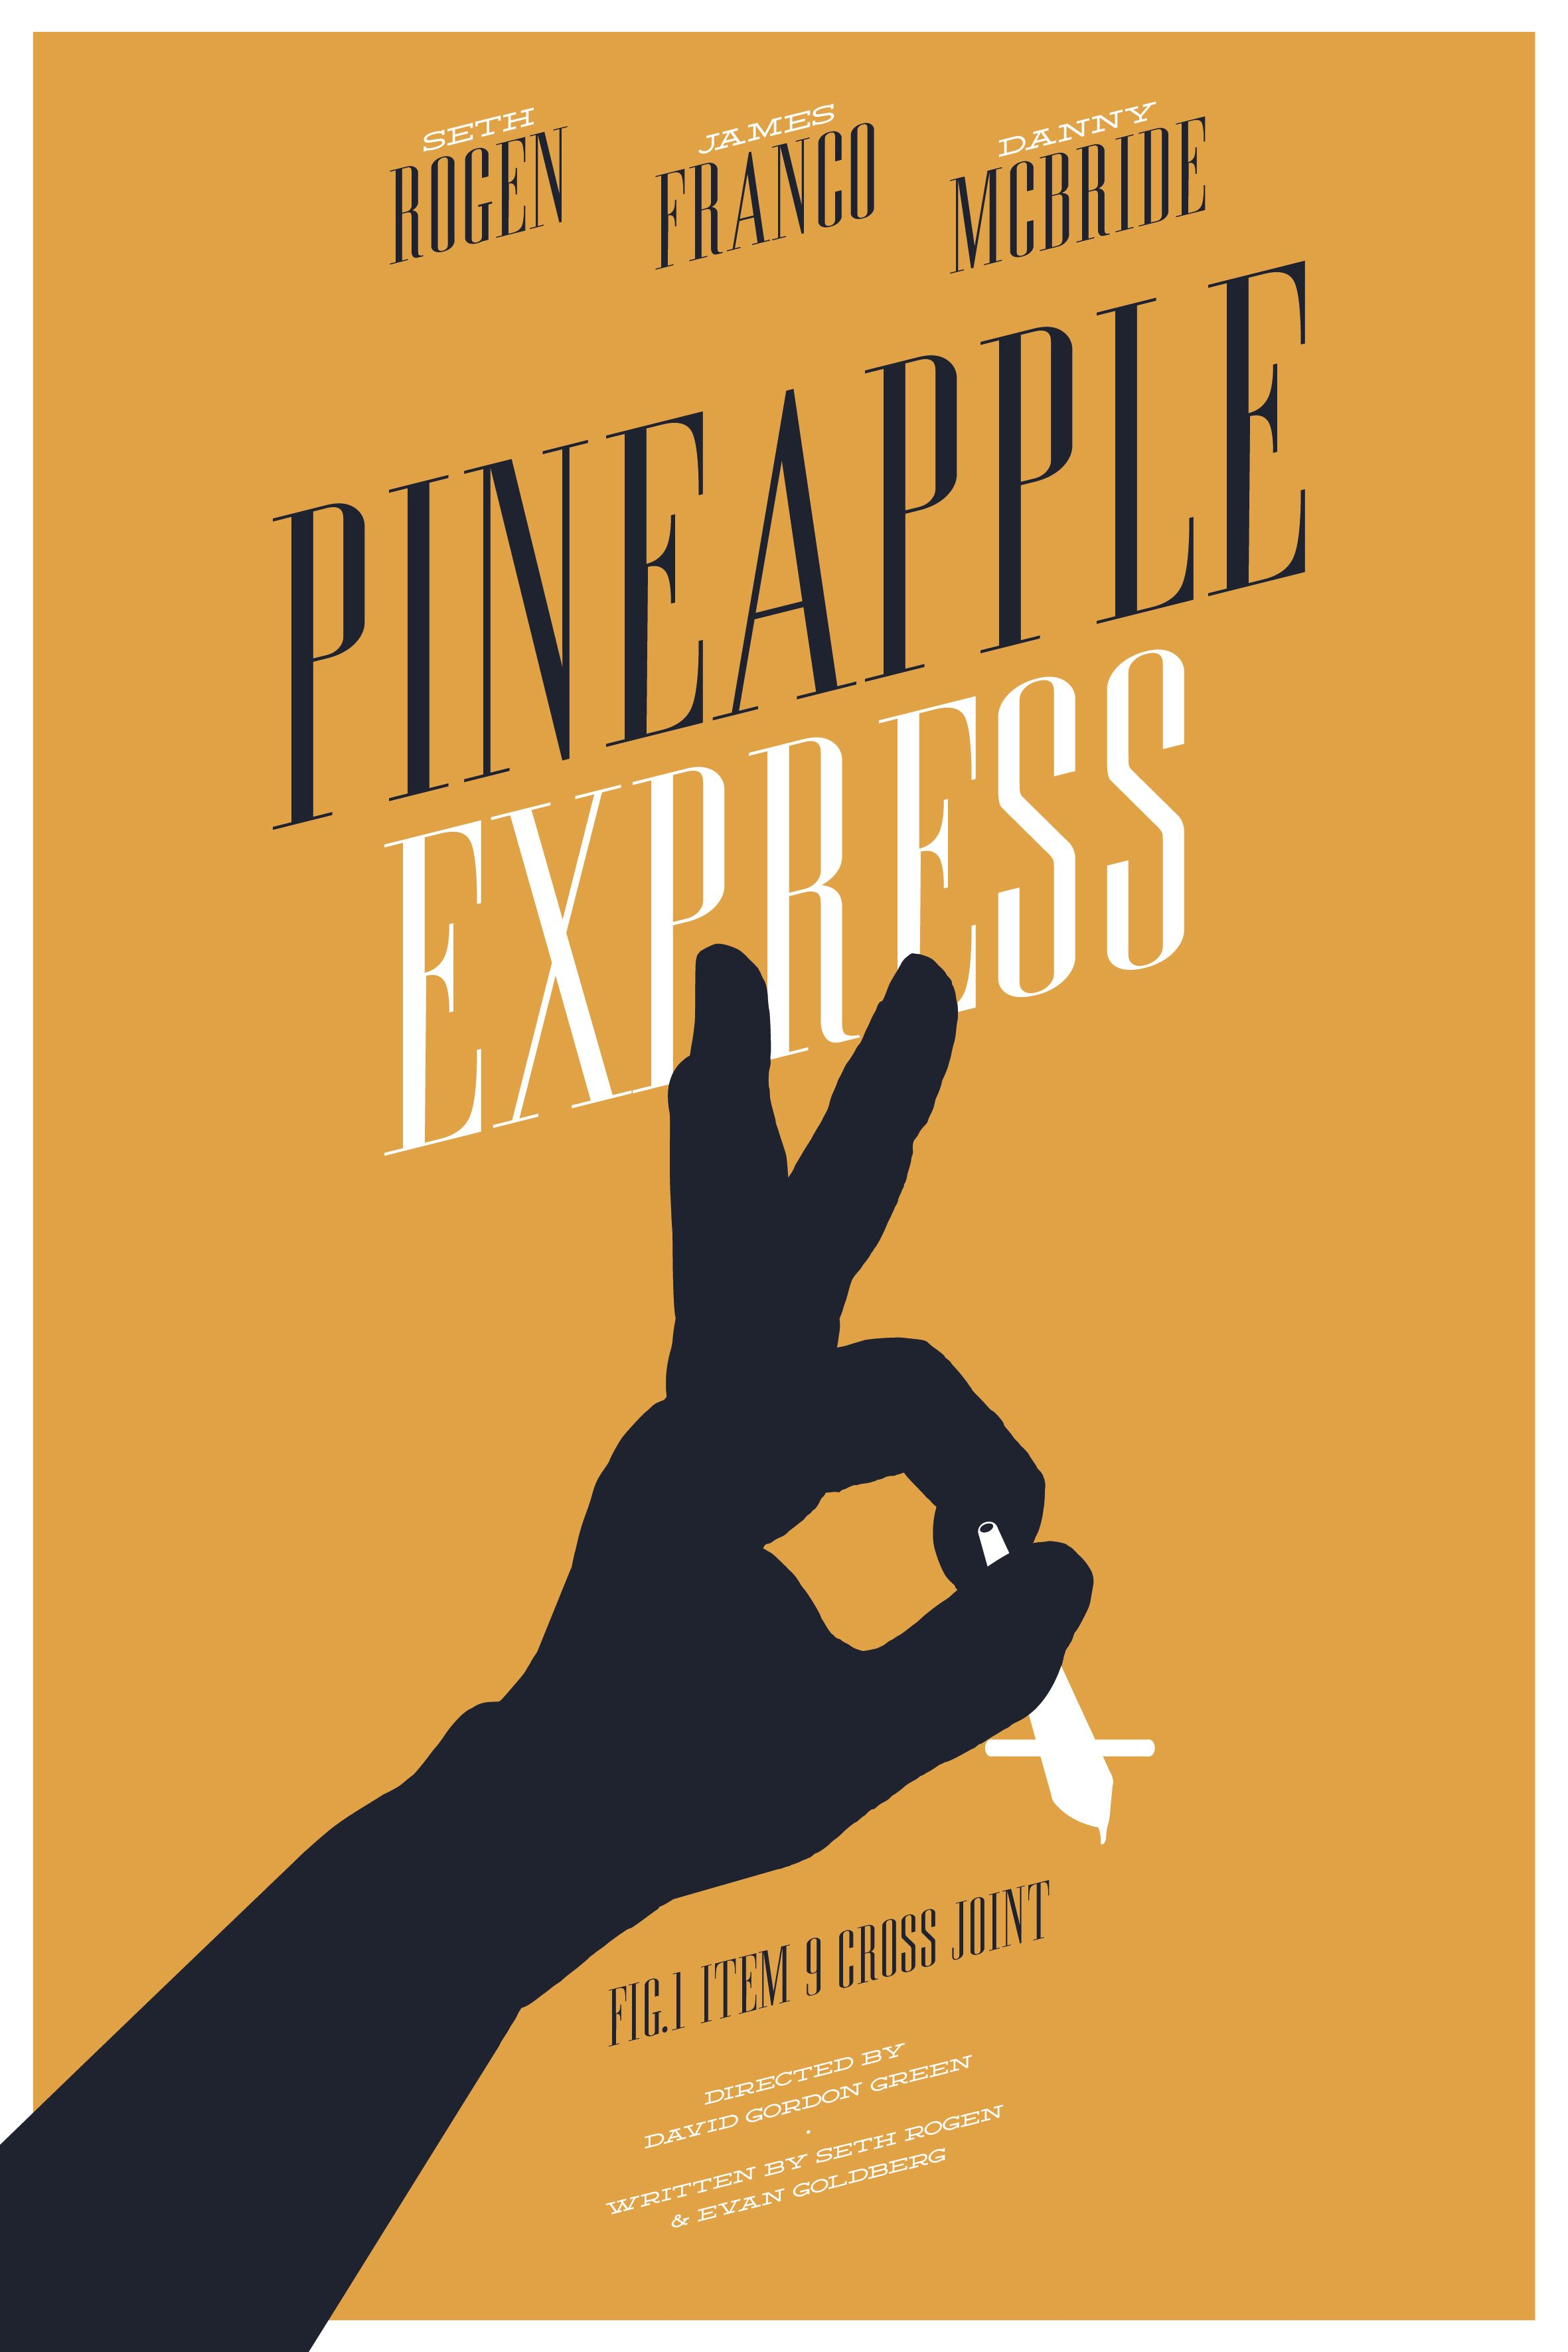 pineapple express 2008 minimal movie poster by nicolas